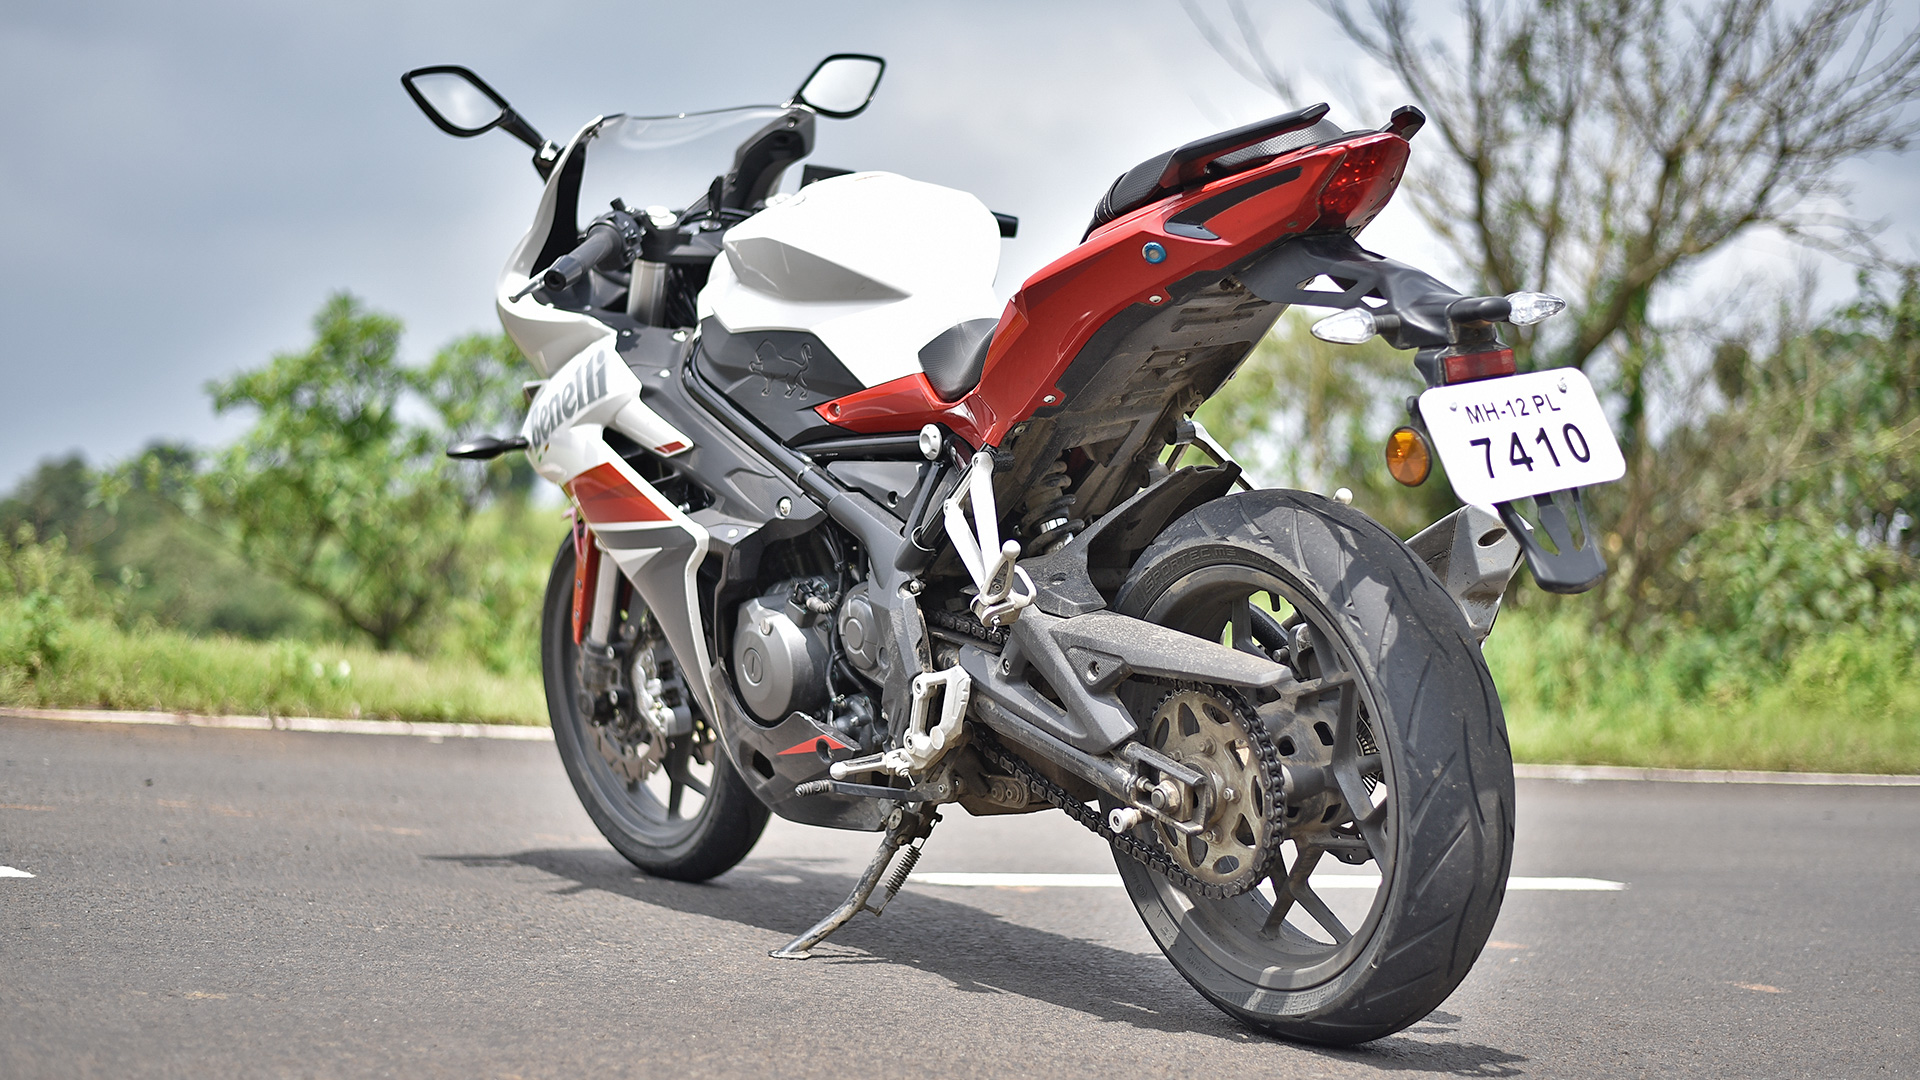 TESTED: 2017 Benelli 302R - Little sports bike with a big